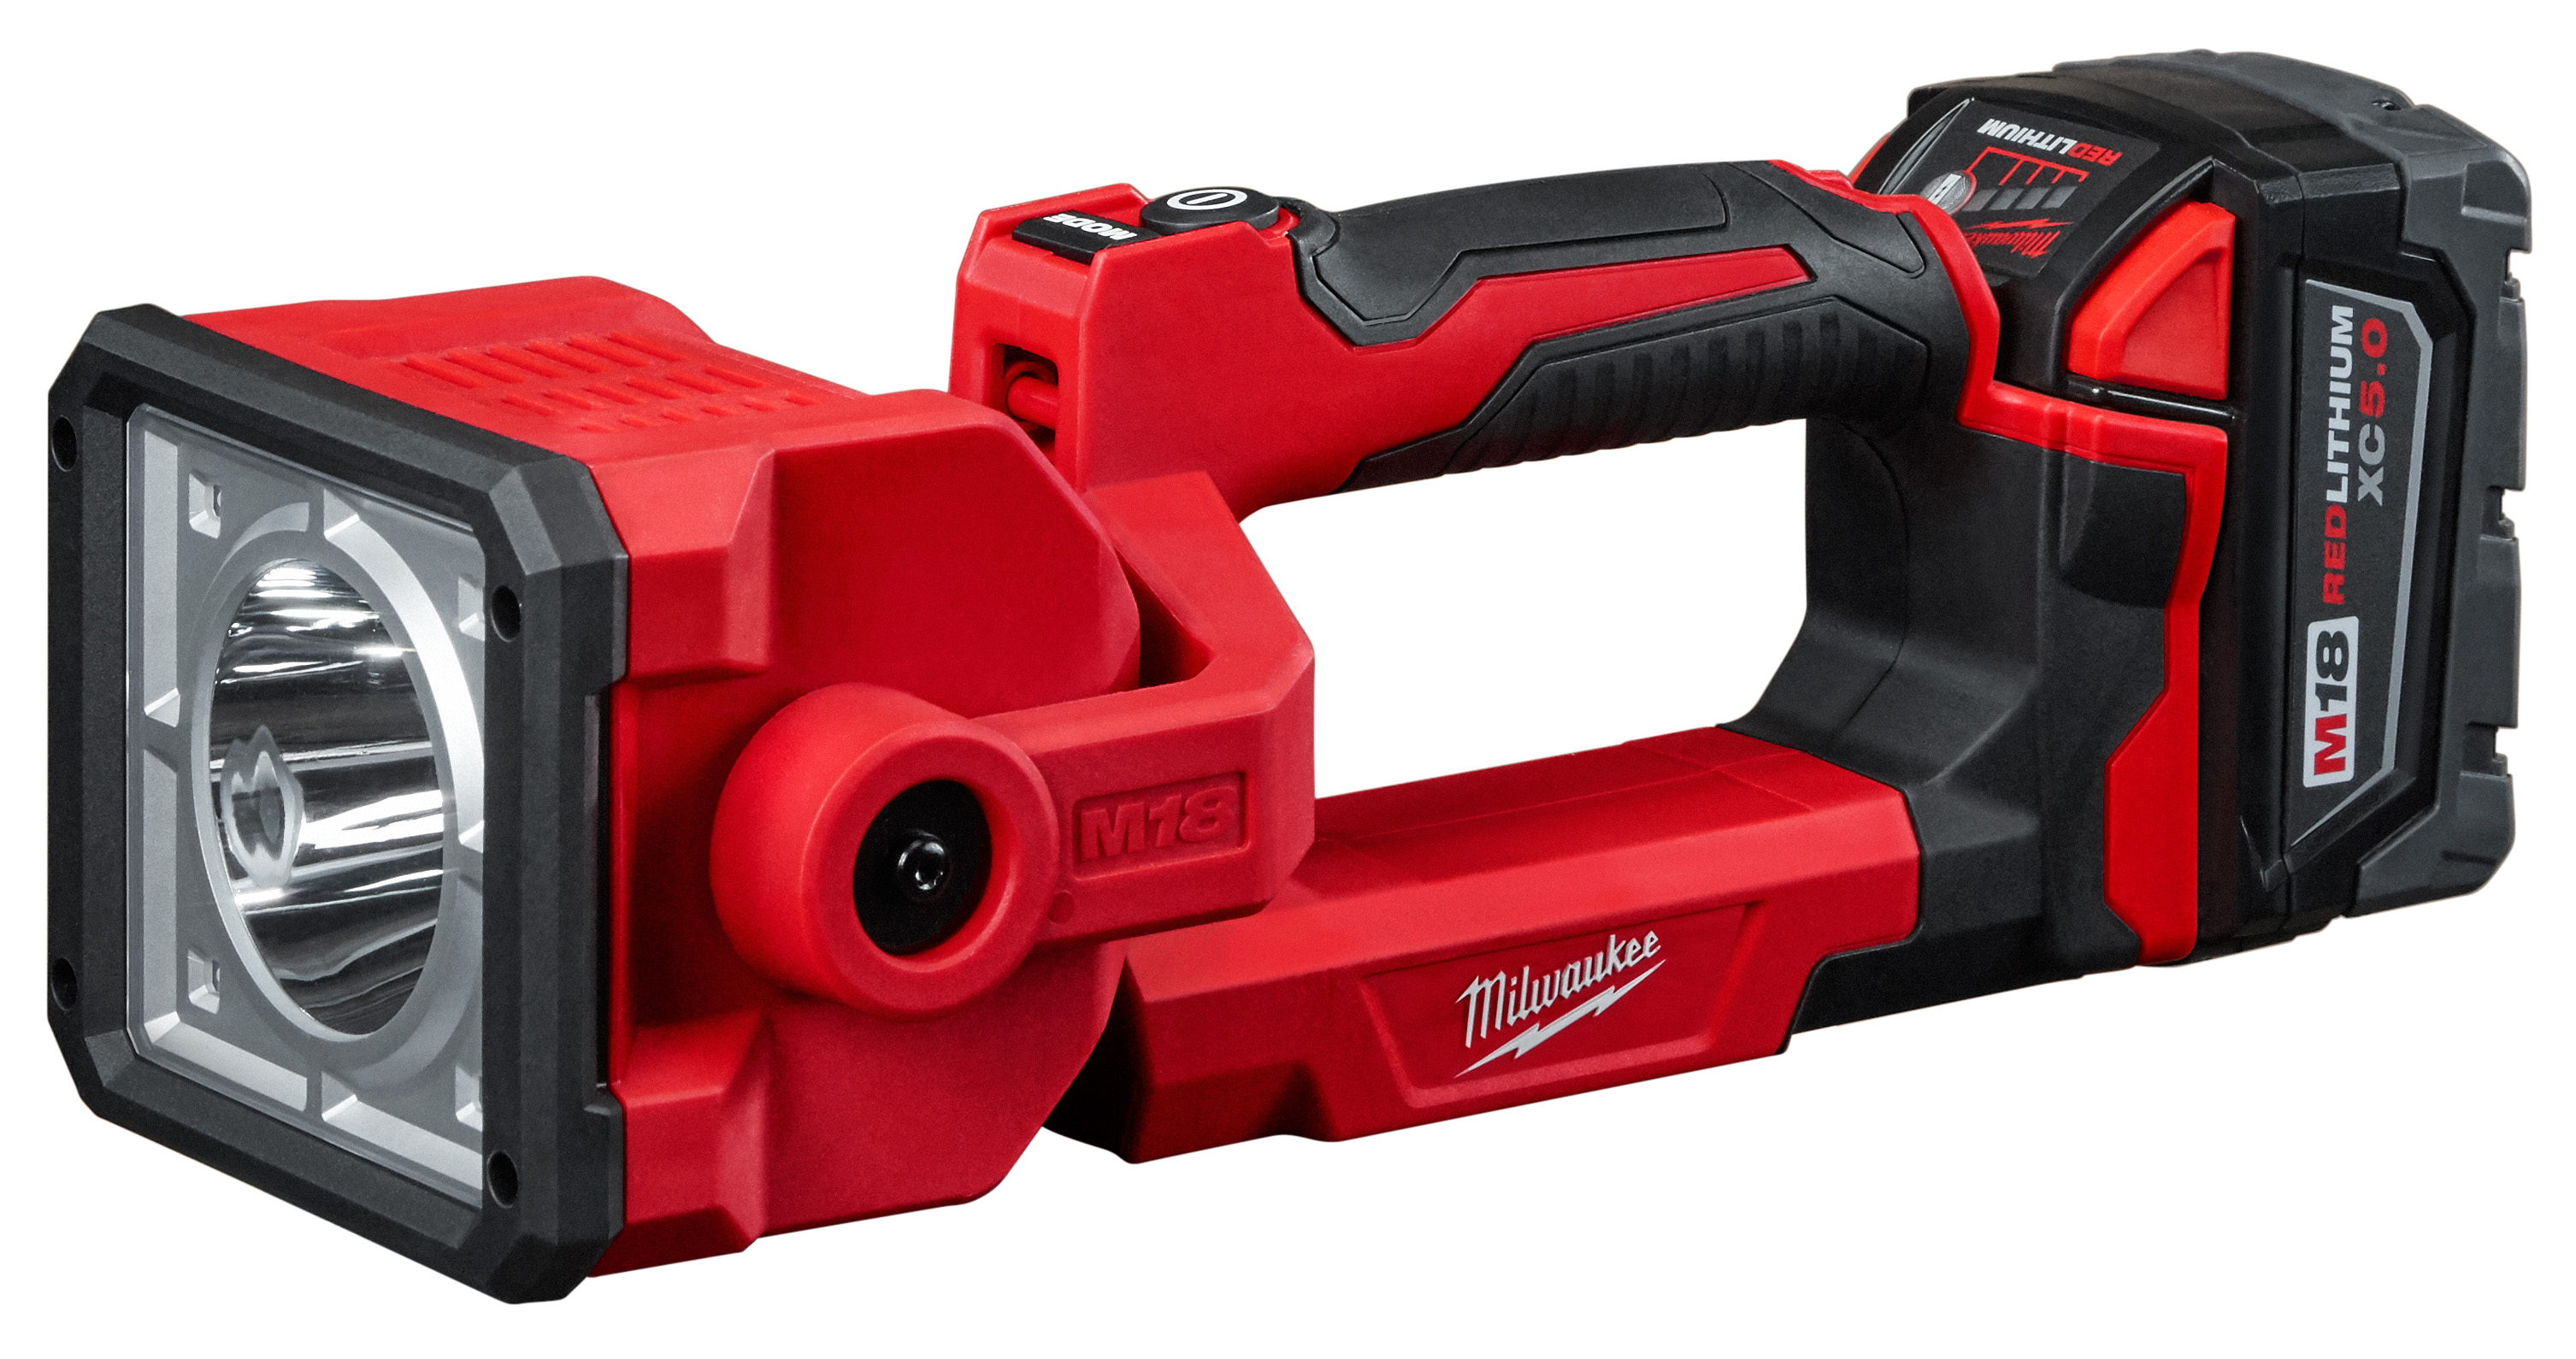 Milwaukee® M18™ 2354-21 Search Light Kit, LED Lamp, 18 VDC, Lithium-Ion Battery